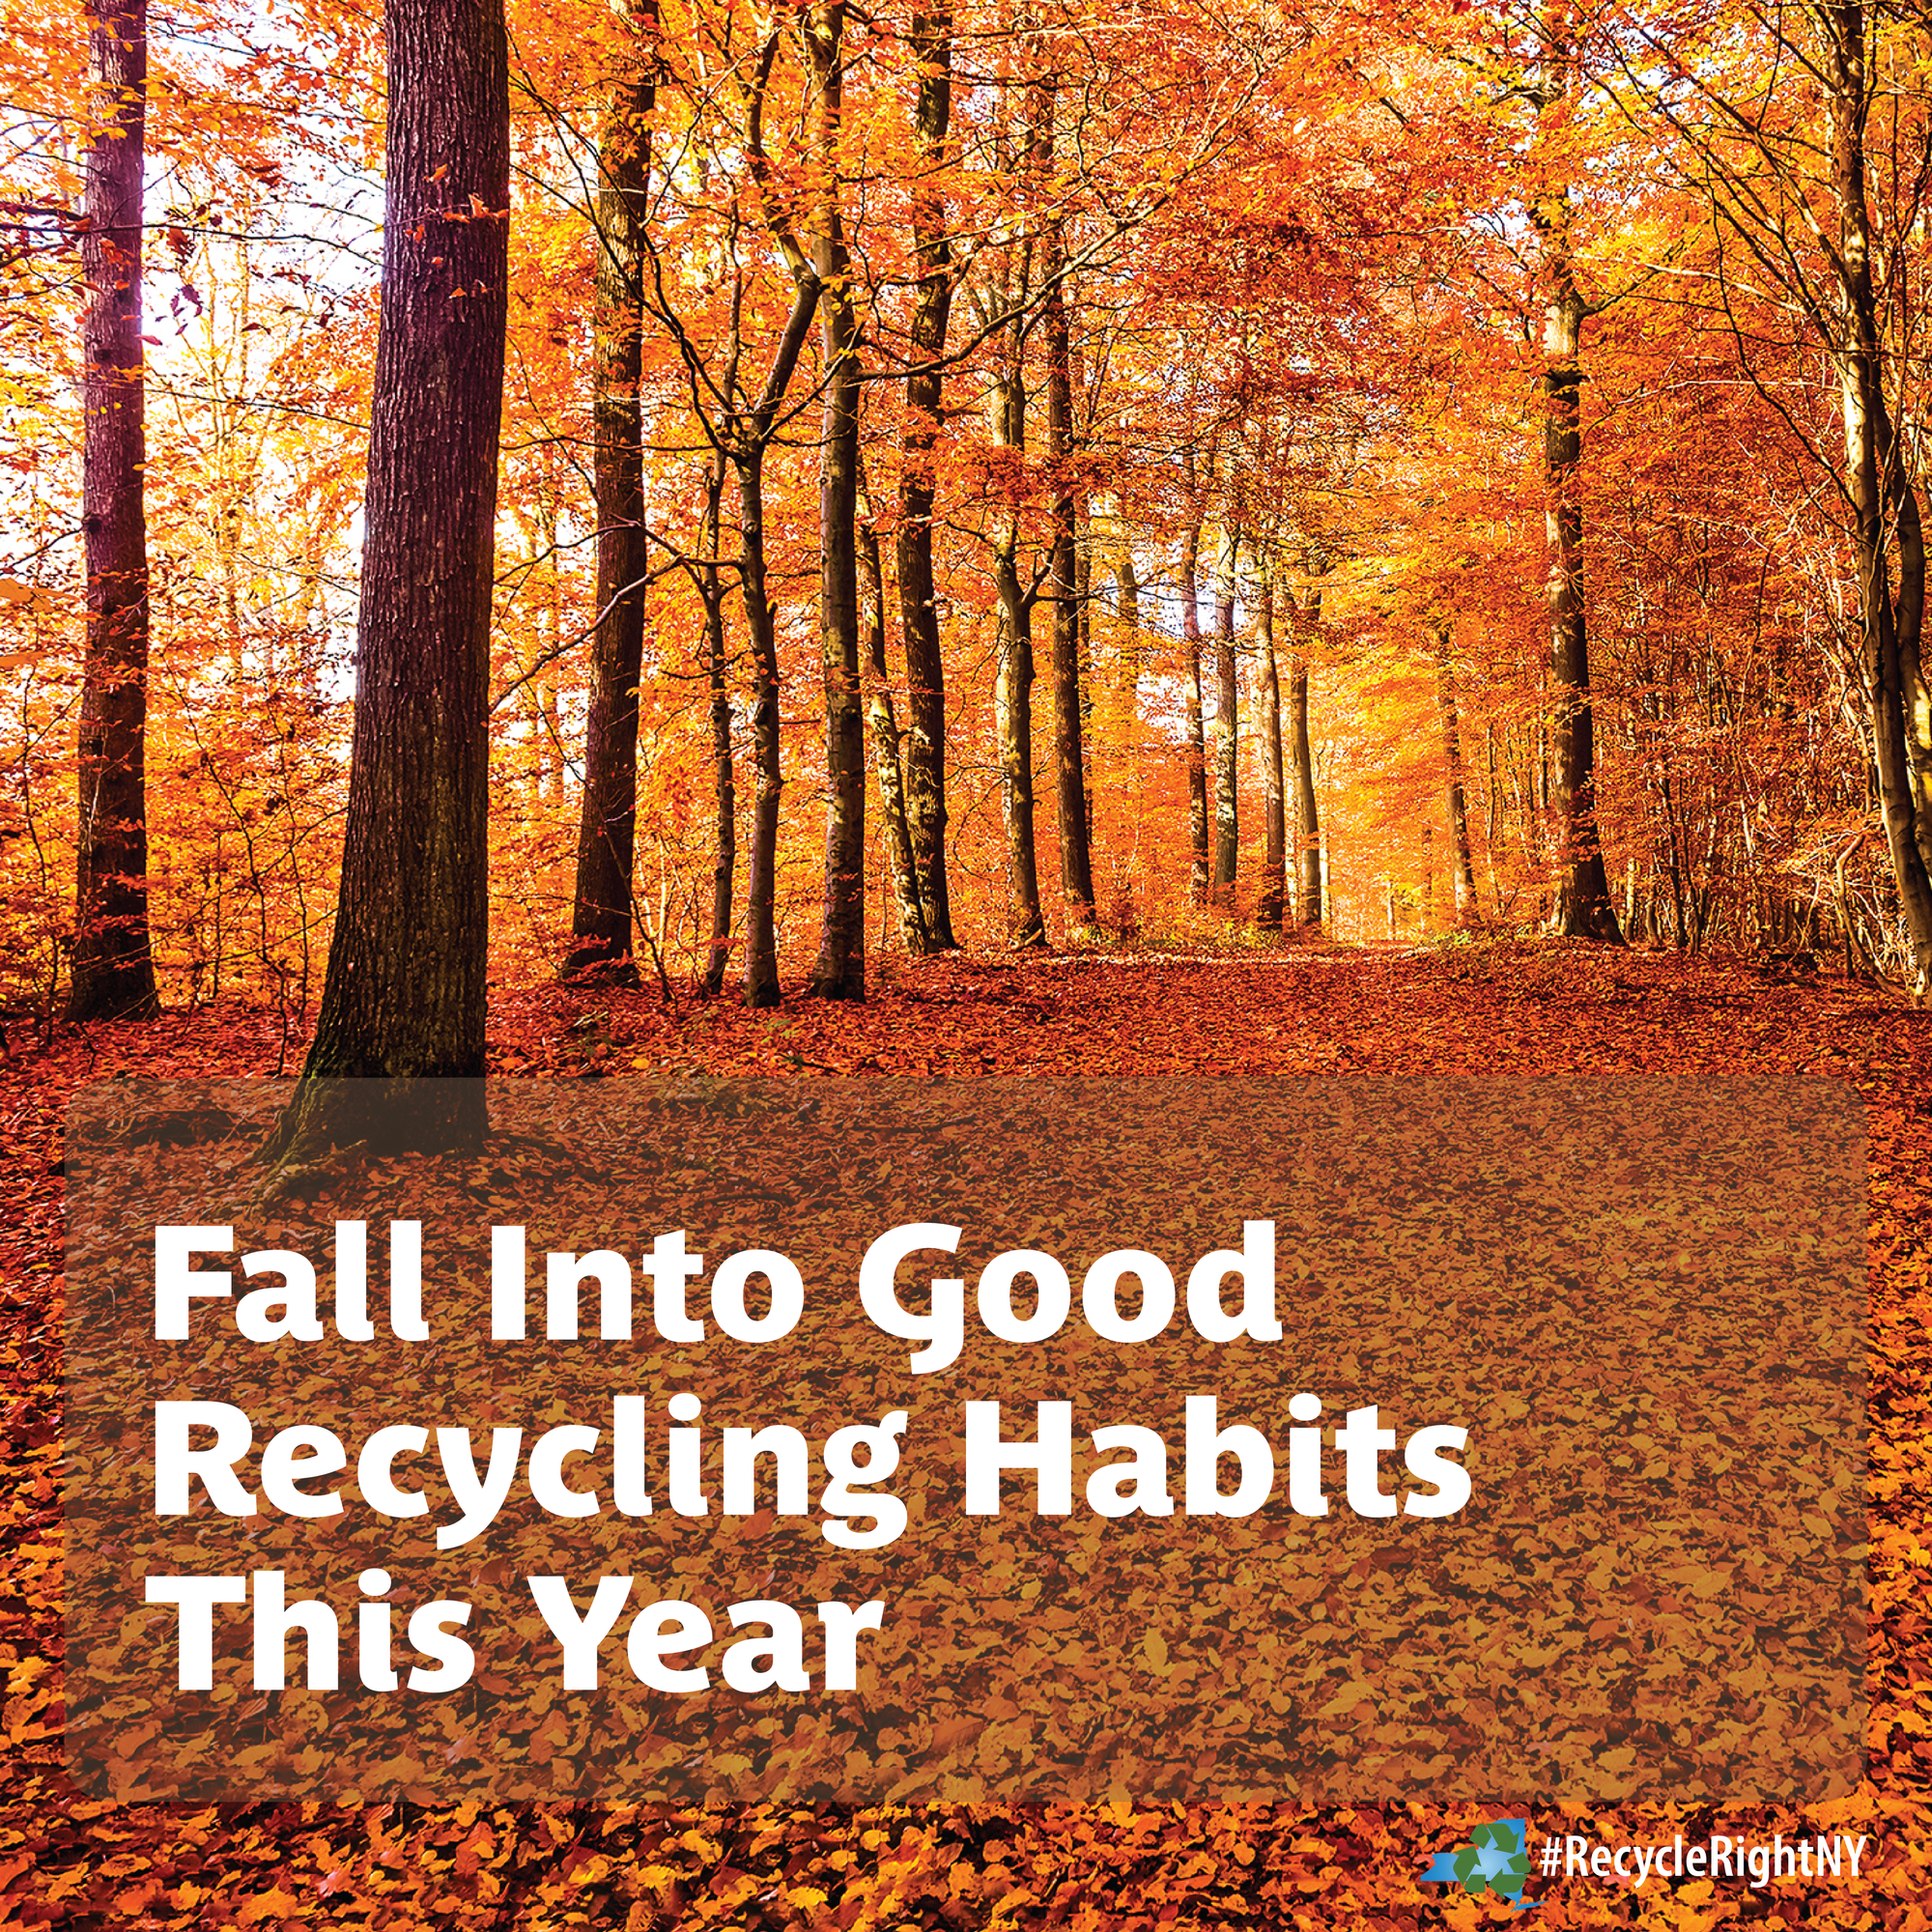 Fall into the Right Recycling Habits